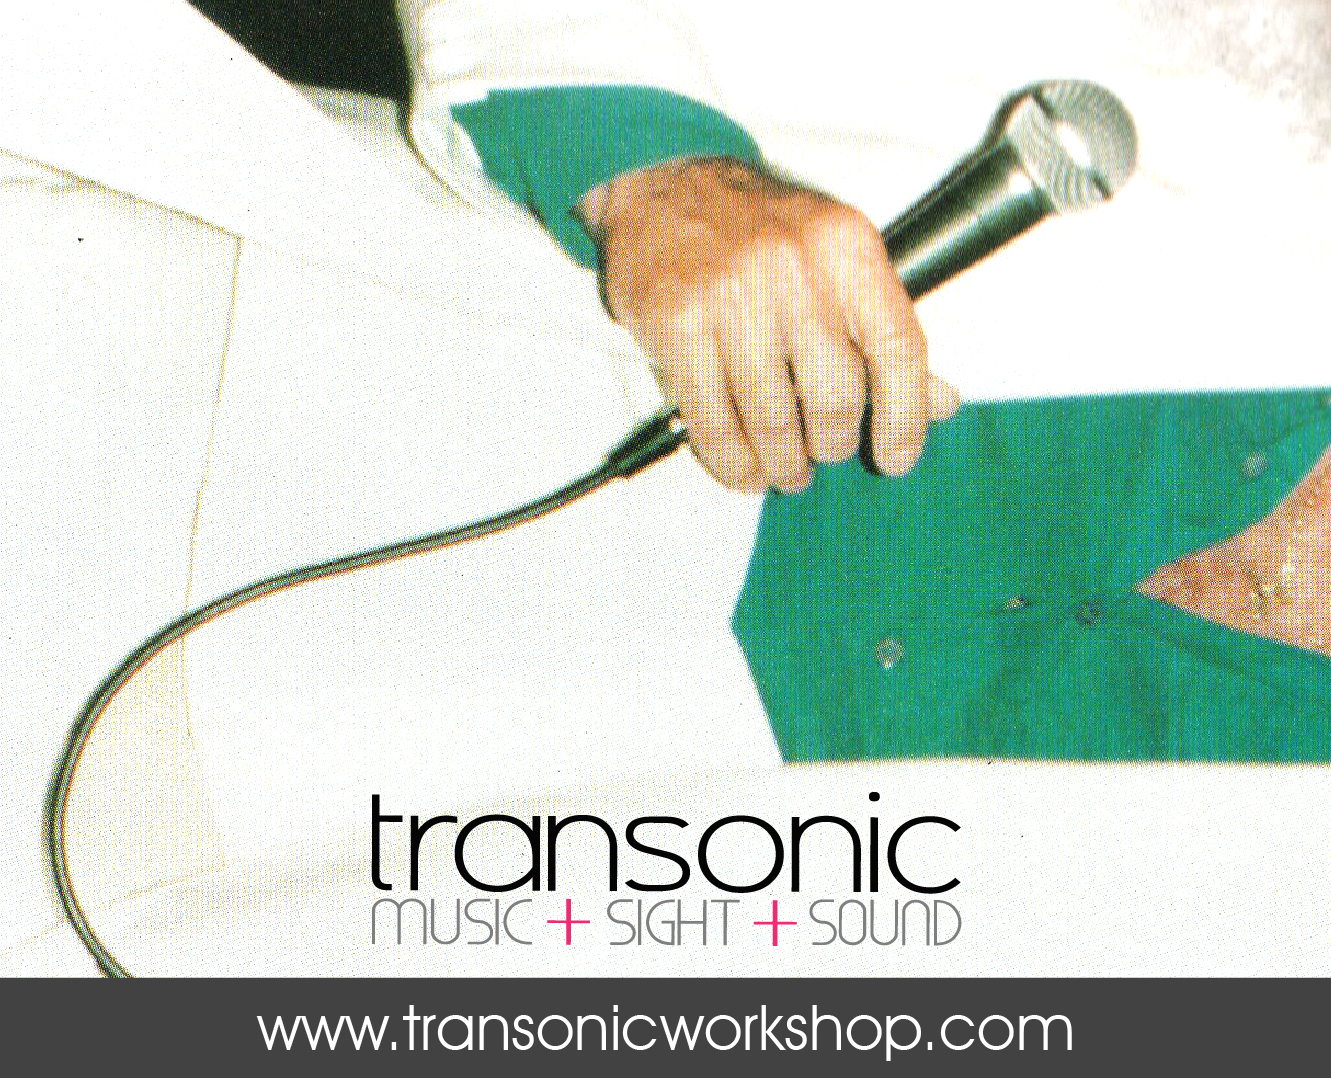 transonic KENNY ROGERS RECTANGLE LOGO web adress-03-03 - Copy 2_o.jpg